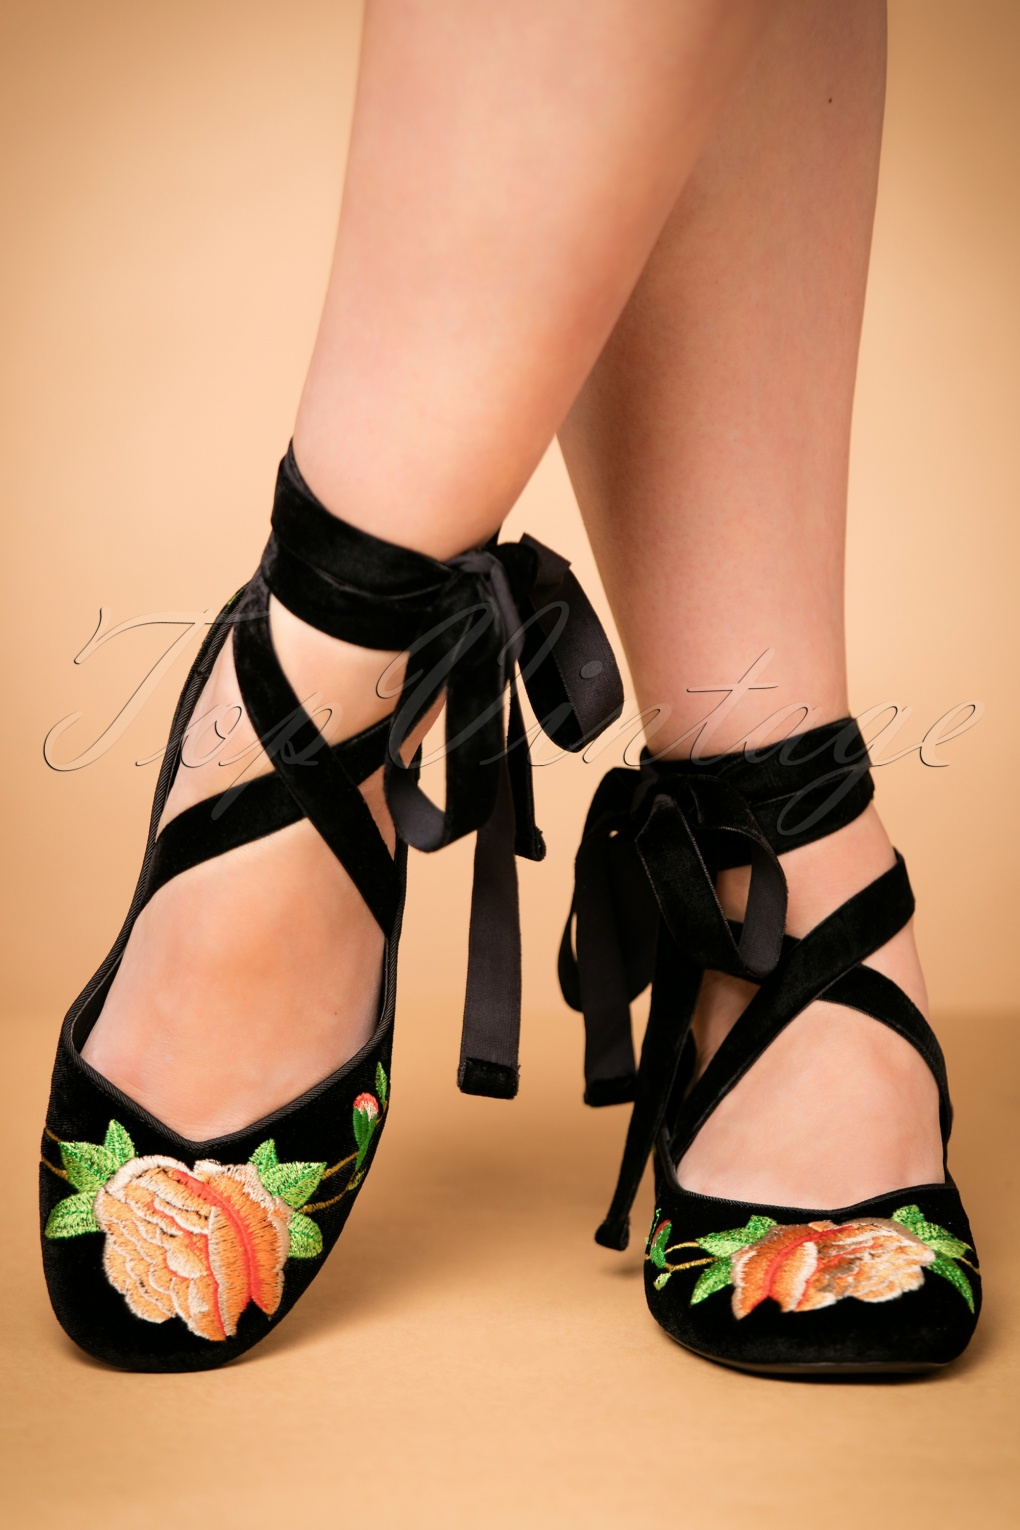 Vintage Style Shoes, Vintage Inspired Shoes 30s Phoebe Floral Ballerina in Black Velvet £87.22 AT vintagedancer.com